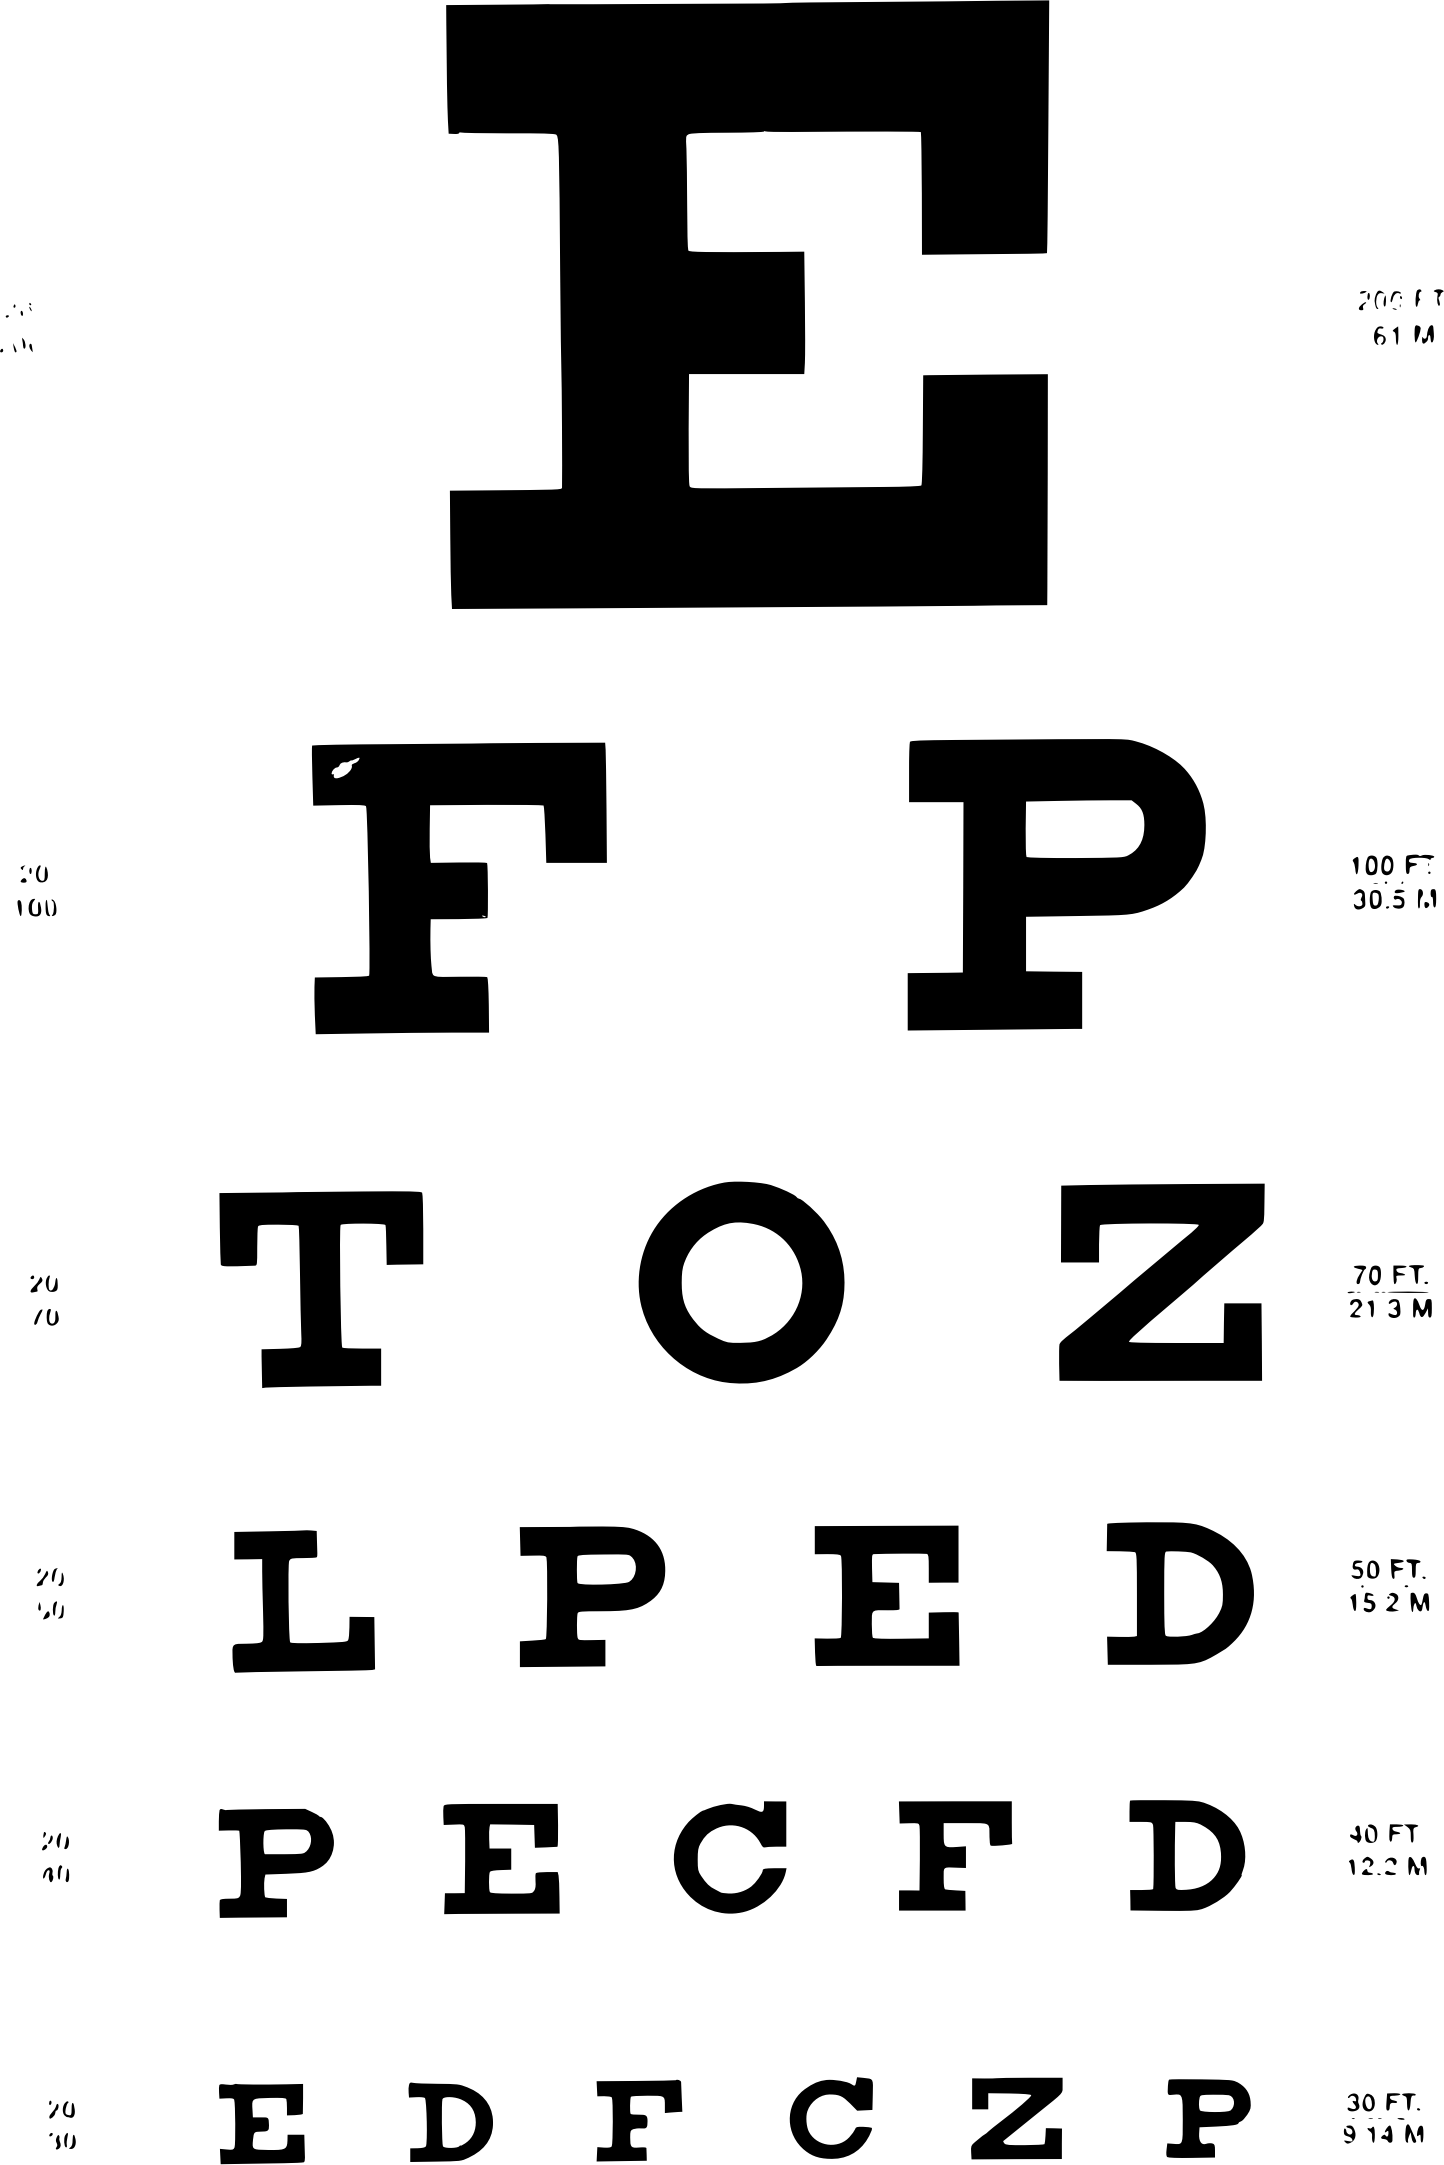 Free Eye Test Cliparts, Download Free Clip Art, Free Clip